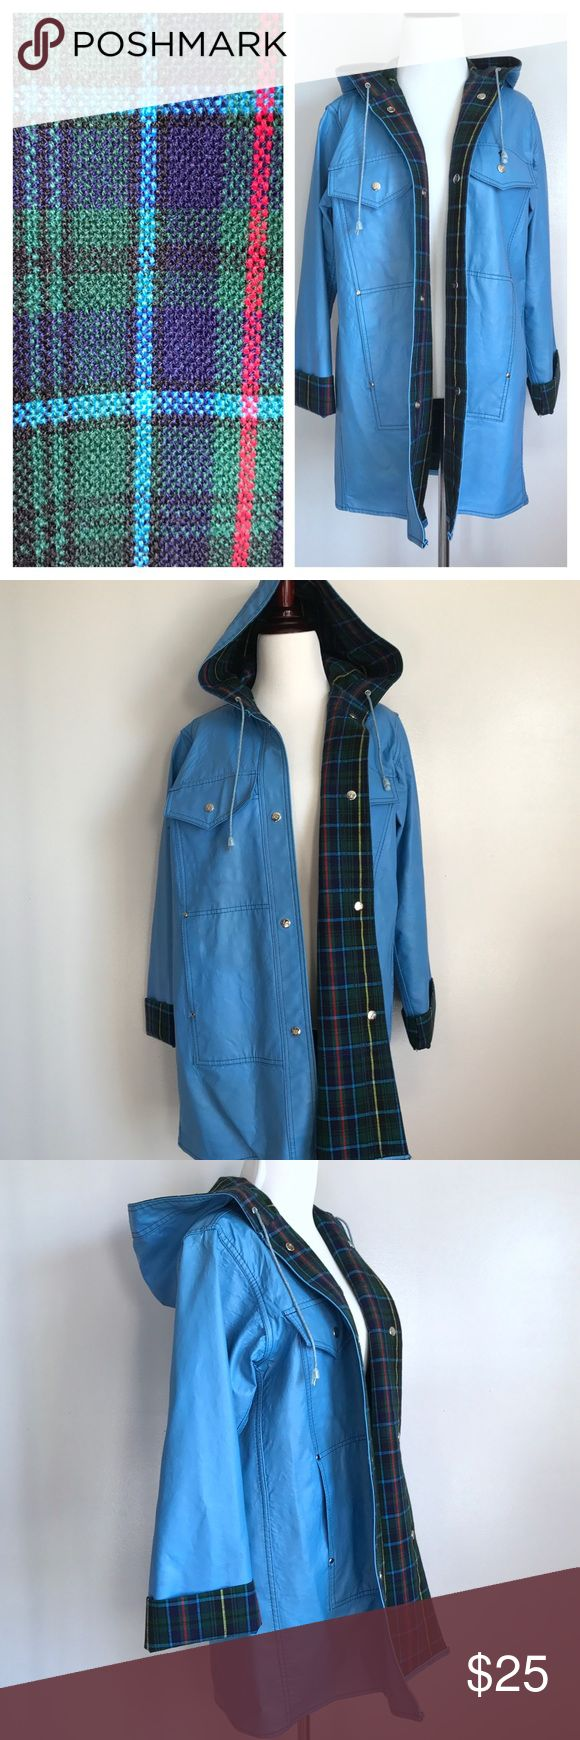 Vintage Lot One Raincoat☔️ Vintage Lot One blue raincoat with green plain flannel inner lining. The size tag is worn but it fits like a medium! Good vintage condition. There are a few minor blemishes which I circled in the last picture. They aren't super noticeable. Please ask questions if you have any :) Lot One Jackets & Coats